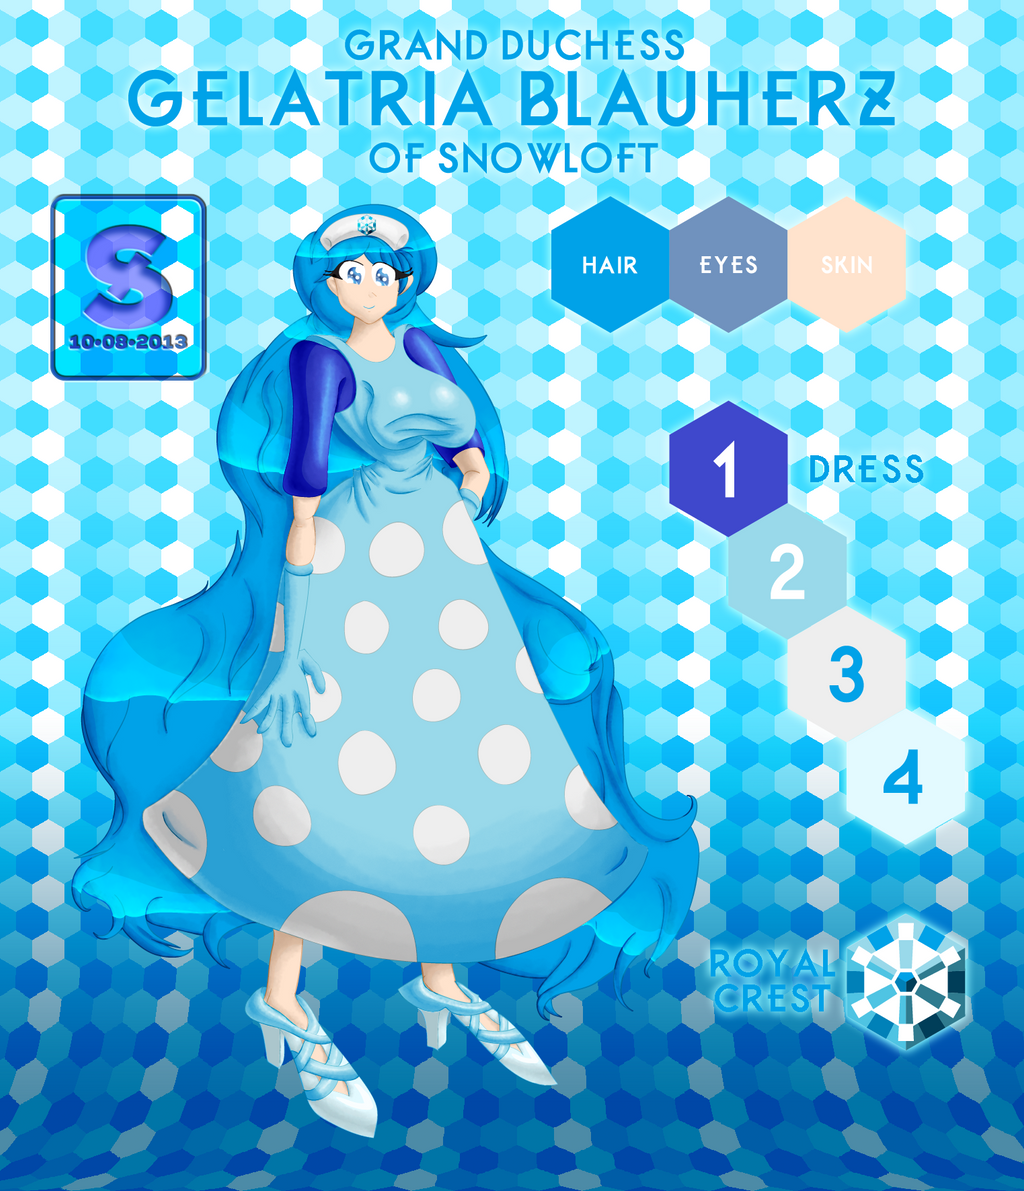 Gelatria Blauherz, Grand Duchess of Snowloft by josephstaleknight